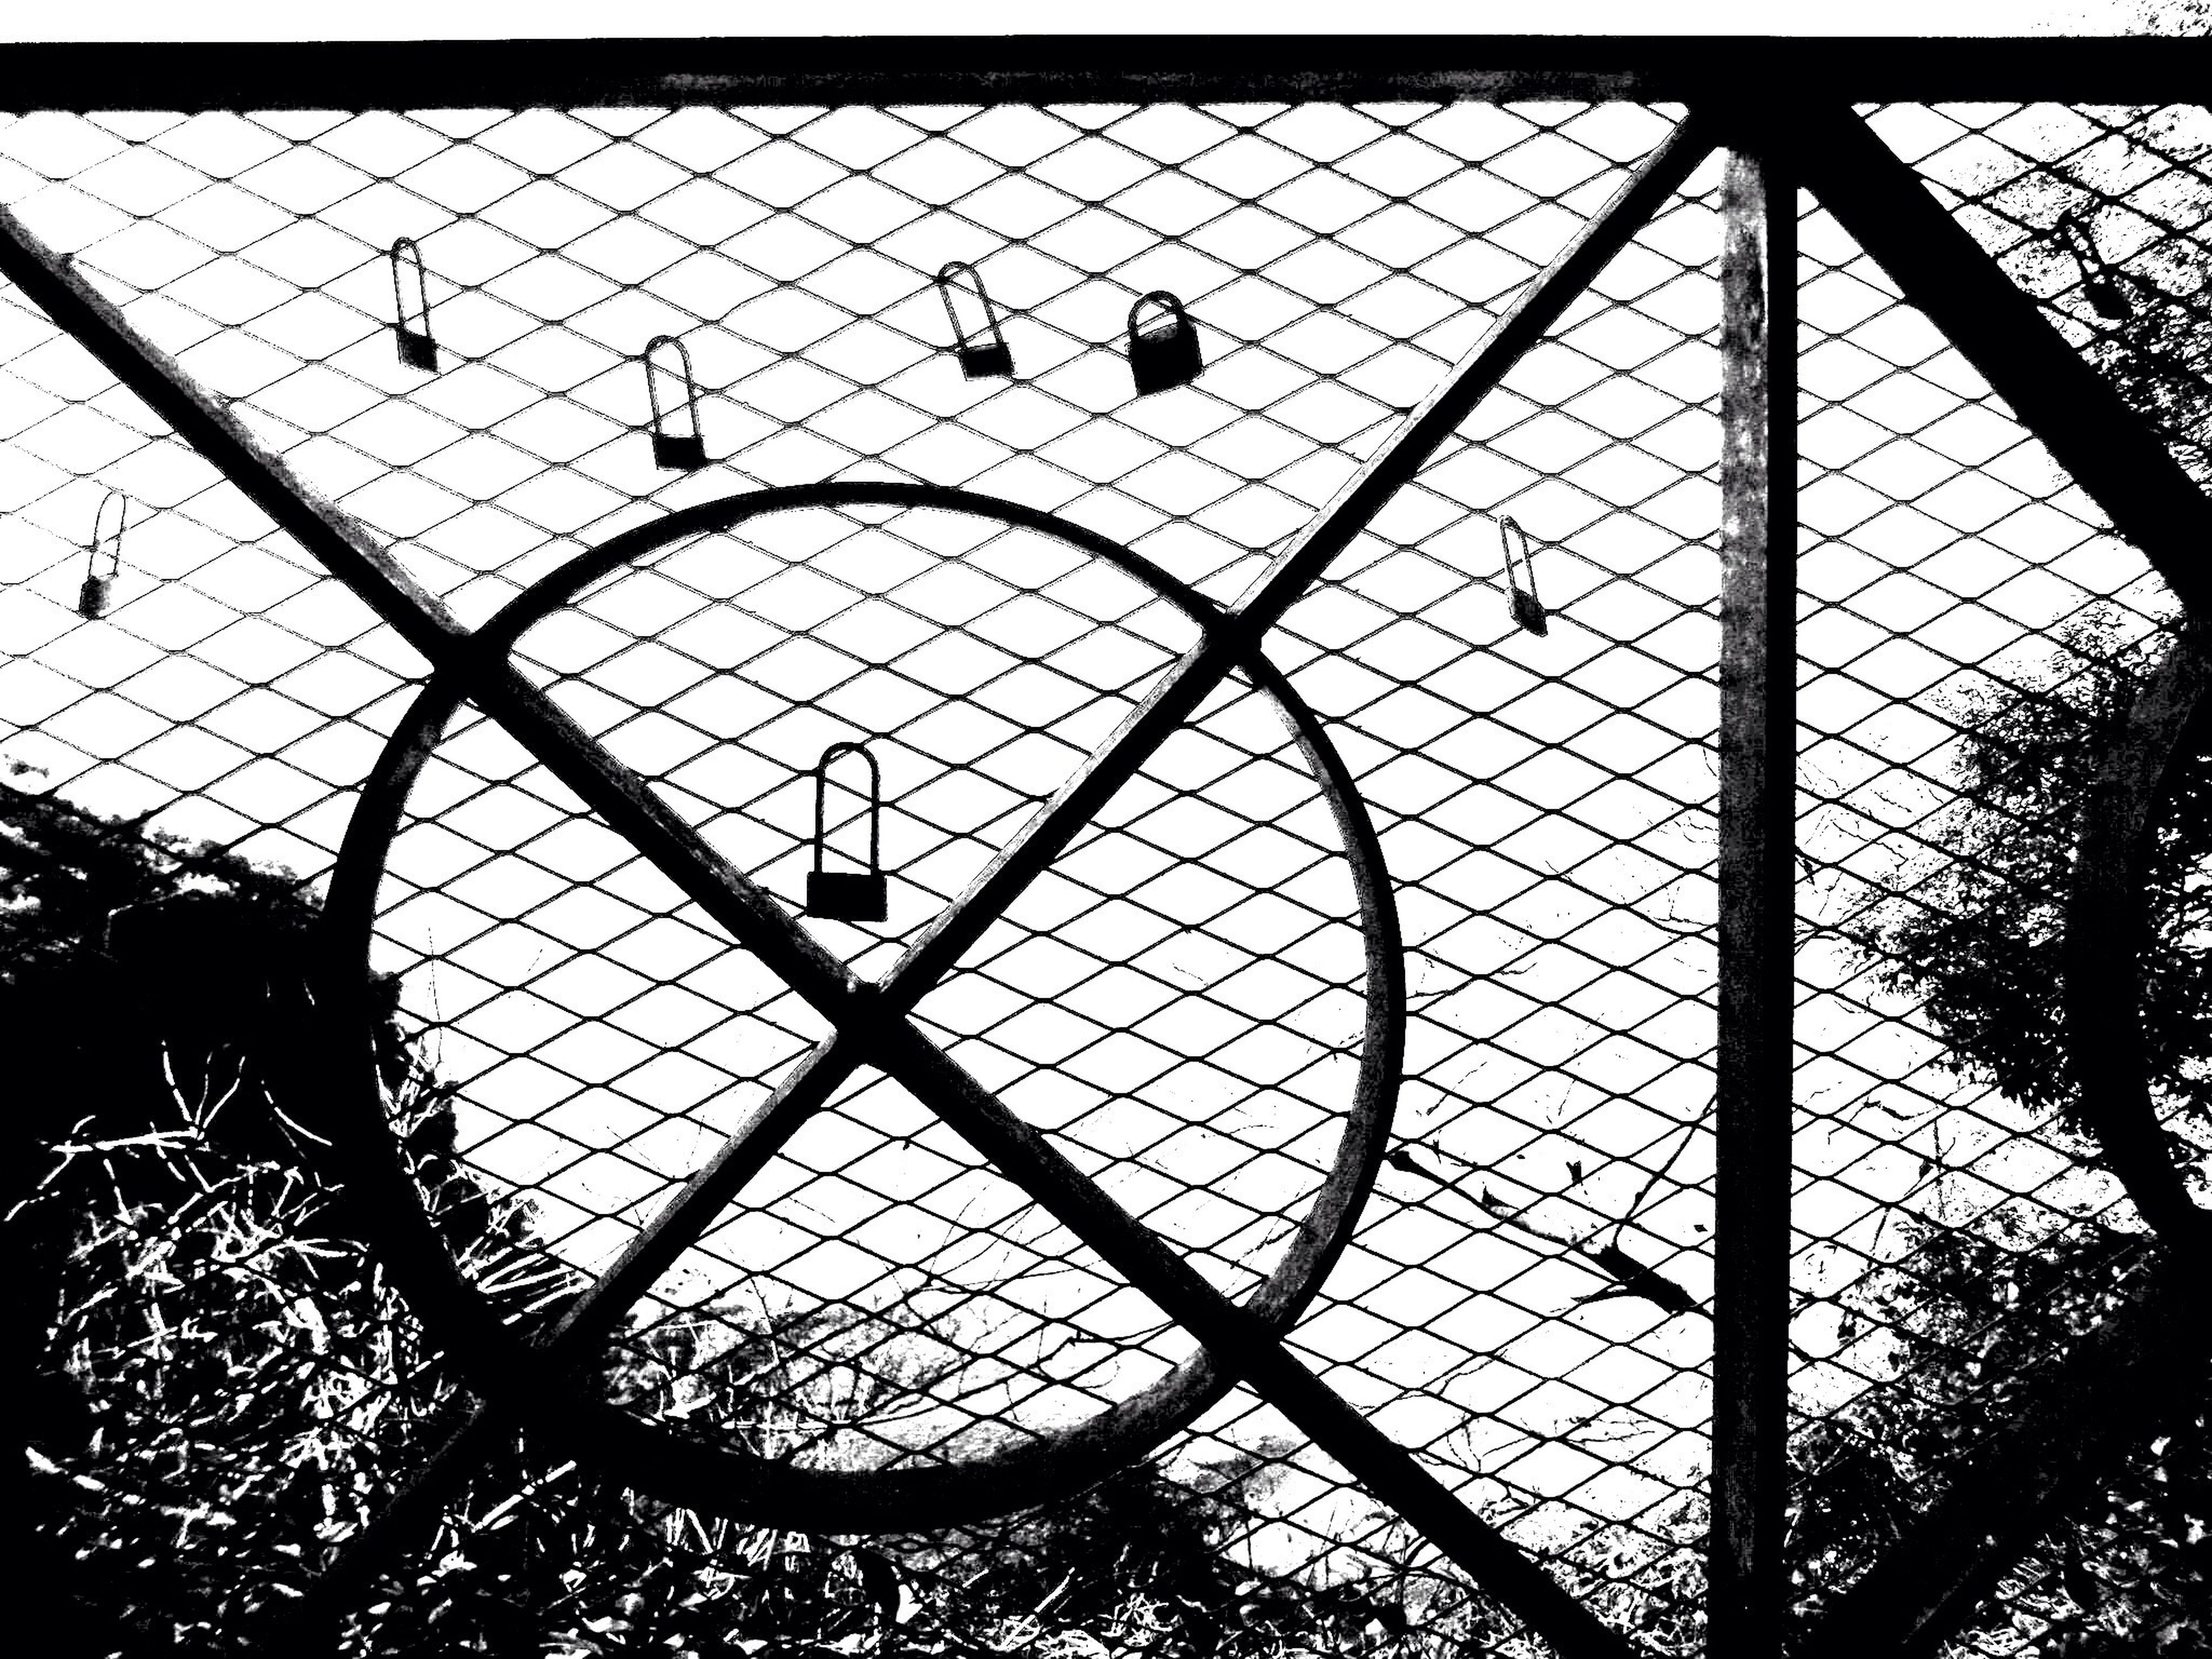 metal, safety, chainlink fence, protection, indoors, circle, glass - material, pattern, geometric shape, close-up, window, security, full frame, silhouette, day, fence, sky, backgrounds, metallic, no people